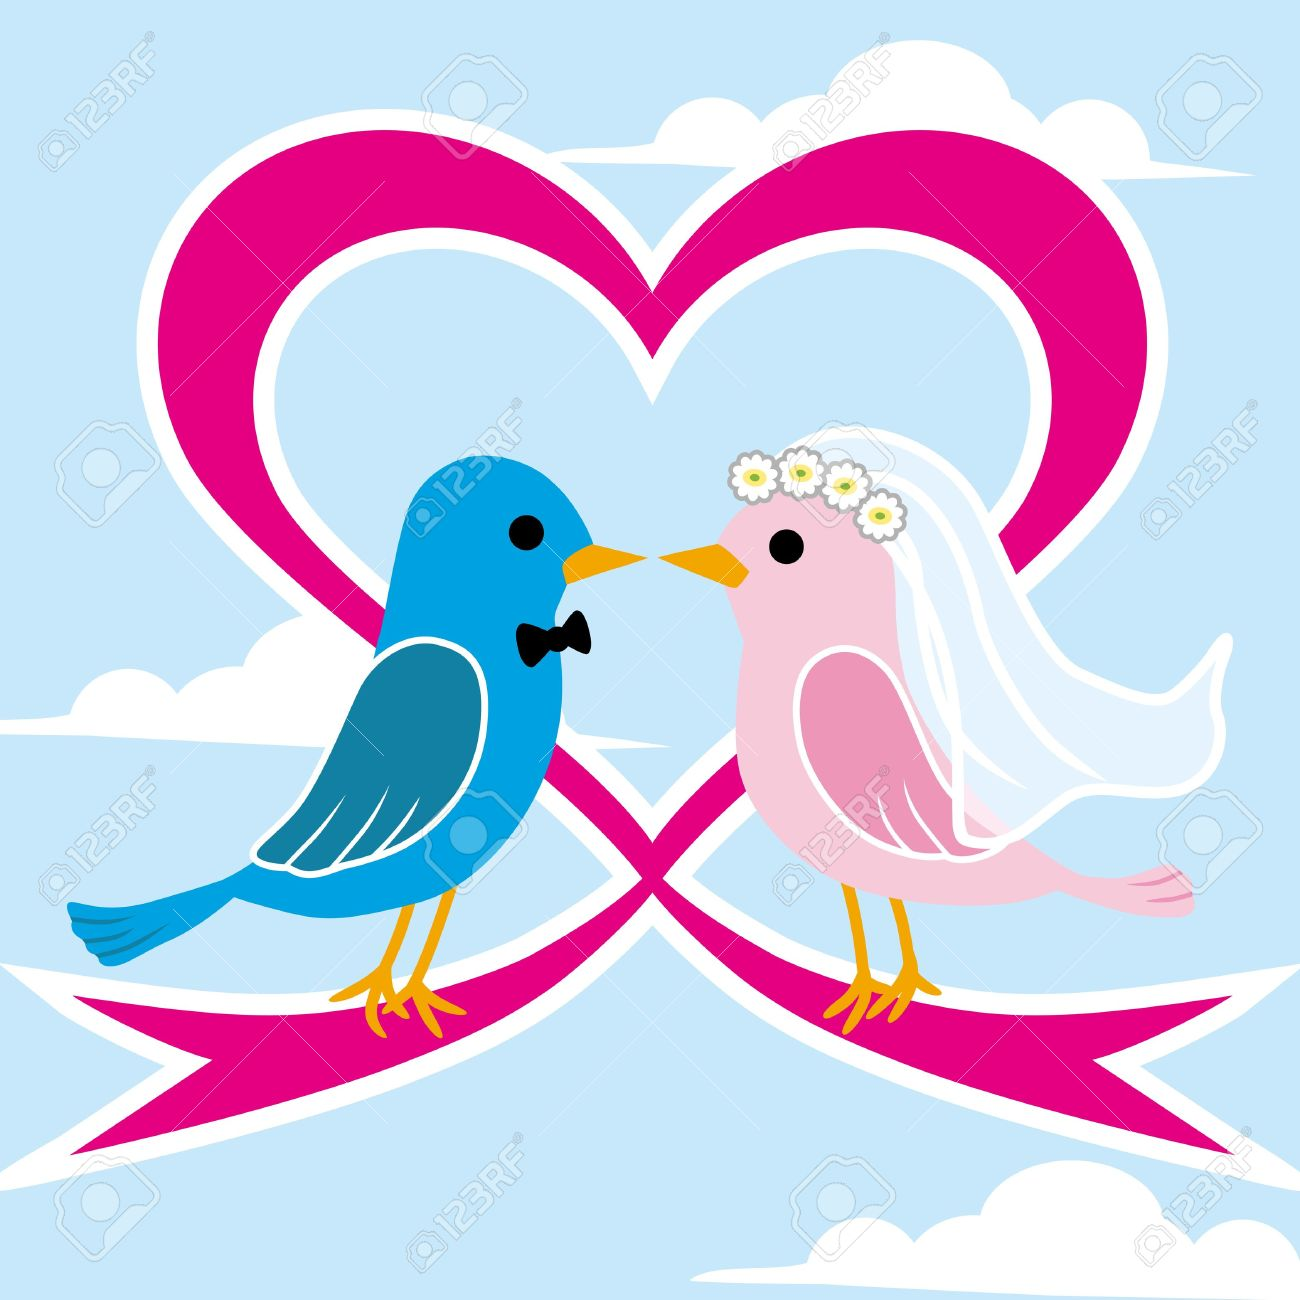 Love birds kissing clipart wedding.